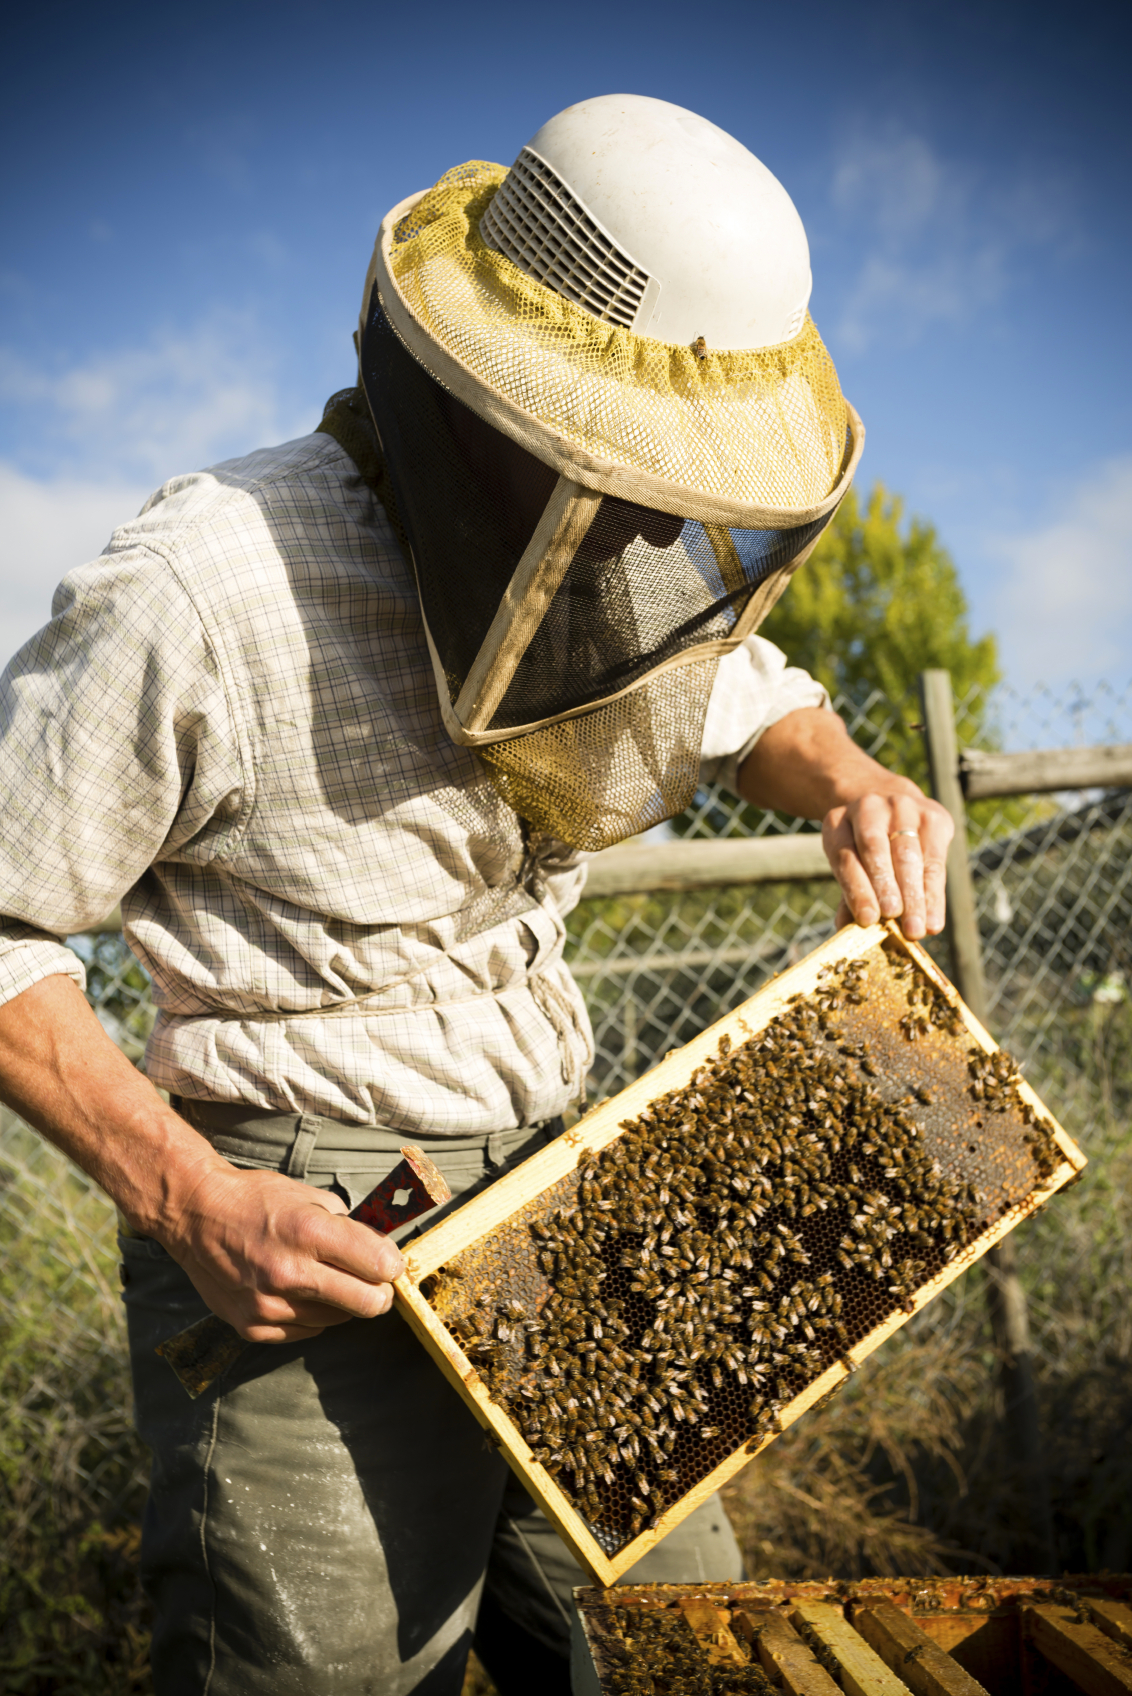 How Disease Can Cause Bee Population Decline